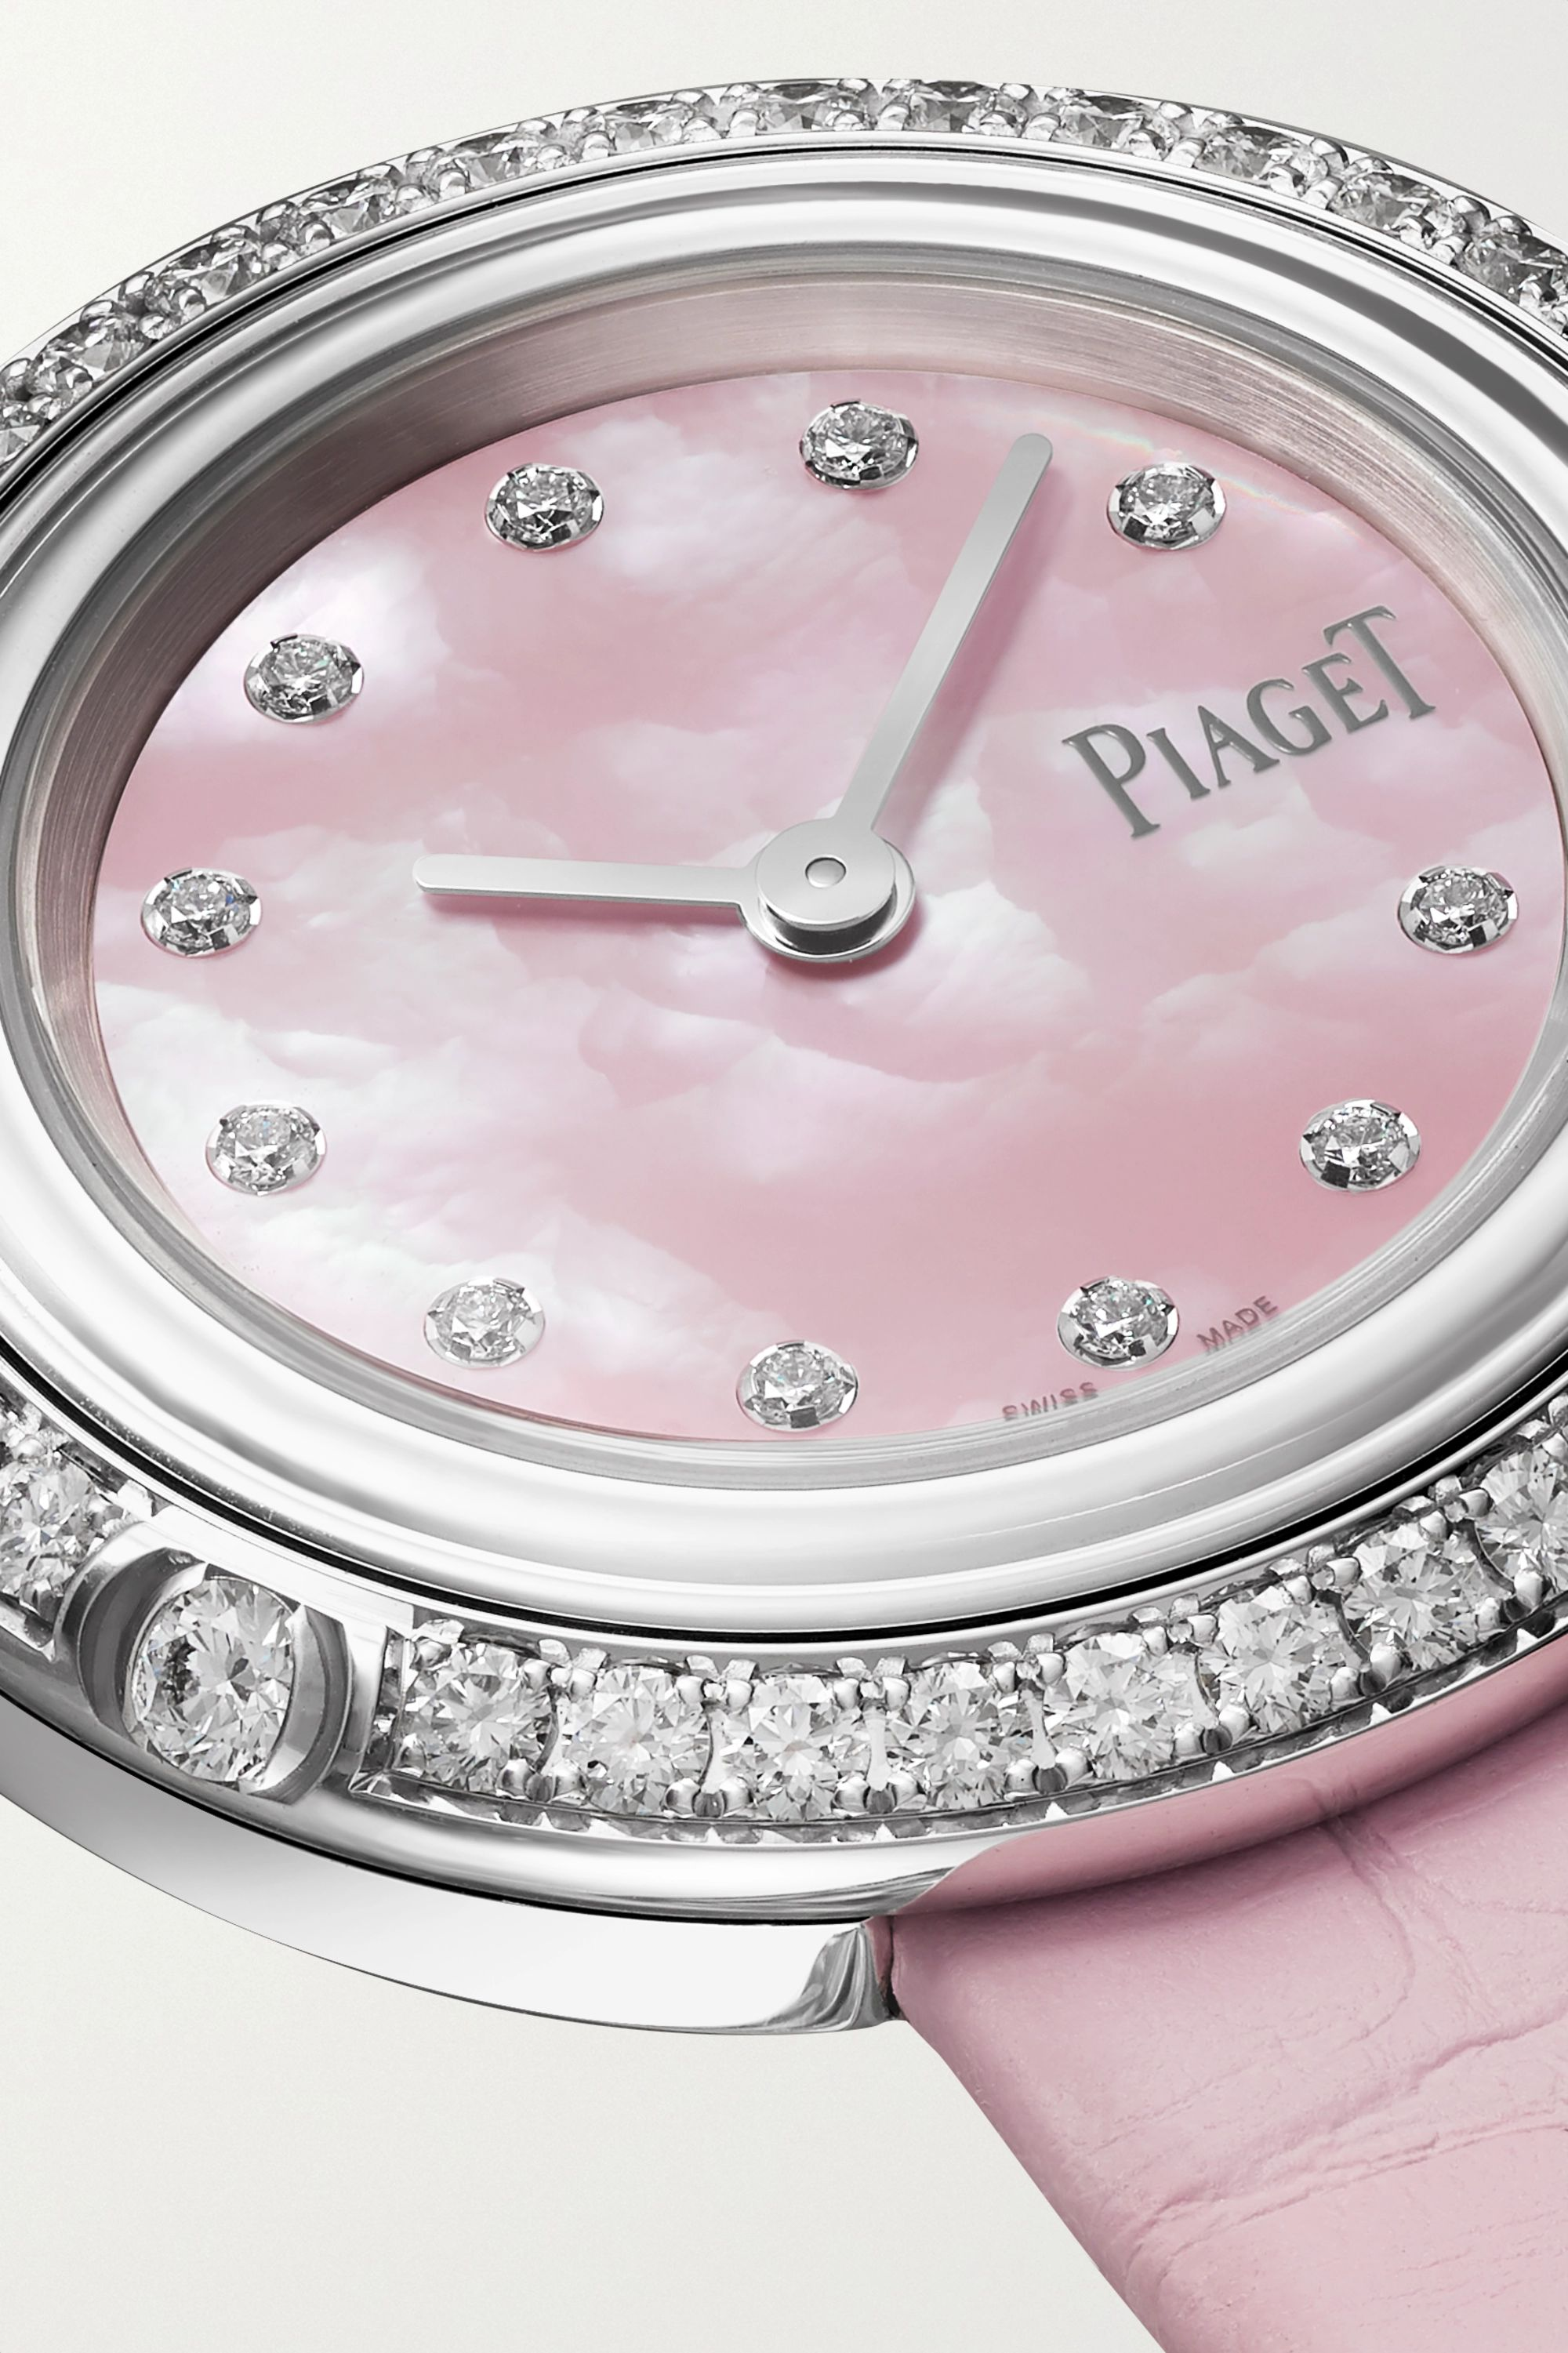 Piaget Possession 29mm 18-karat white gold, alligator and diamond watch